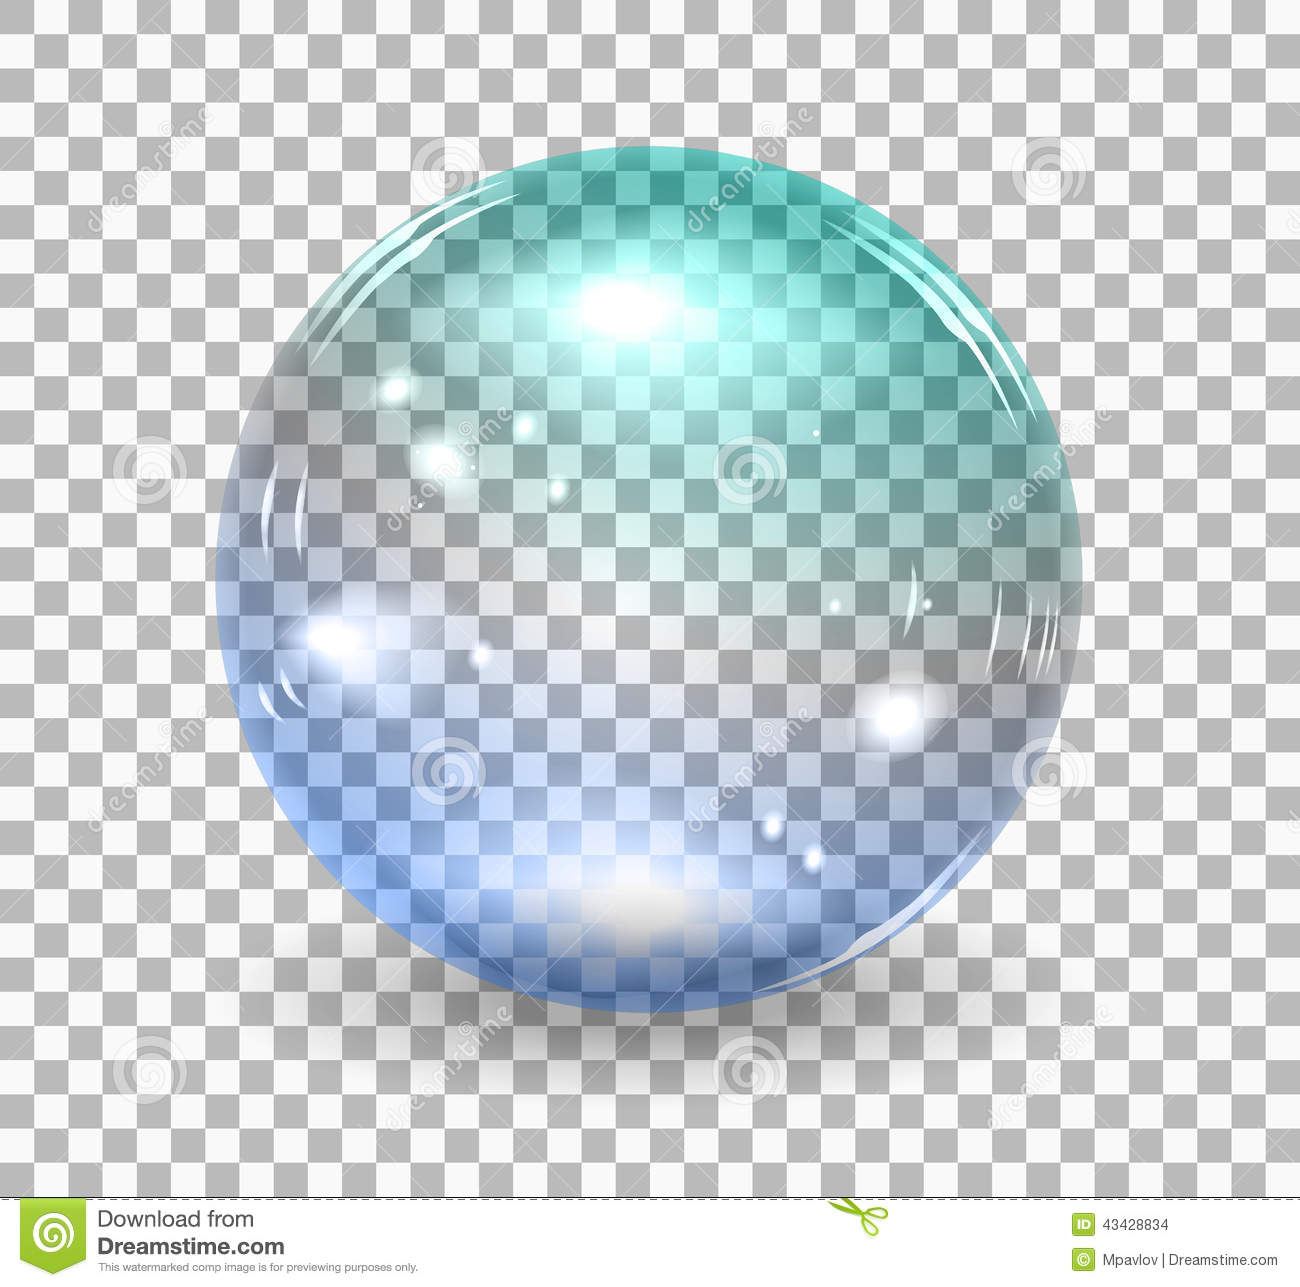 Nice Images Collection: Bubble Desktop Wallpapers